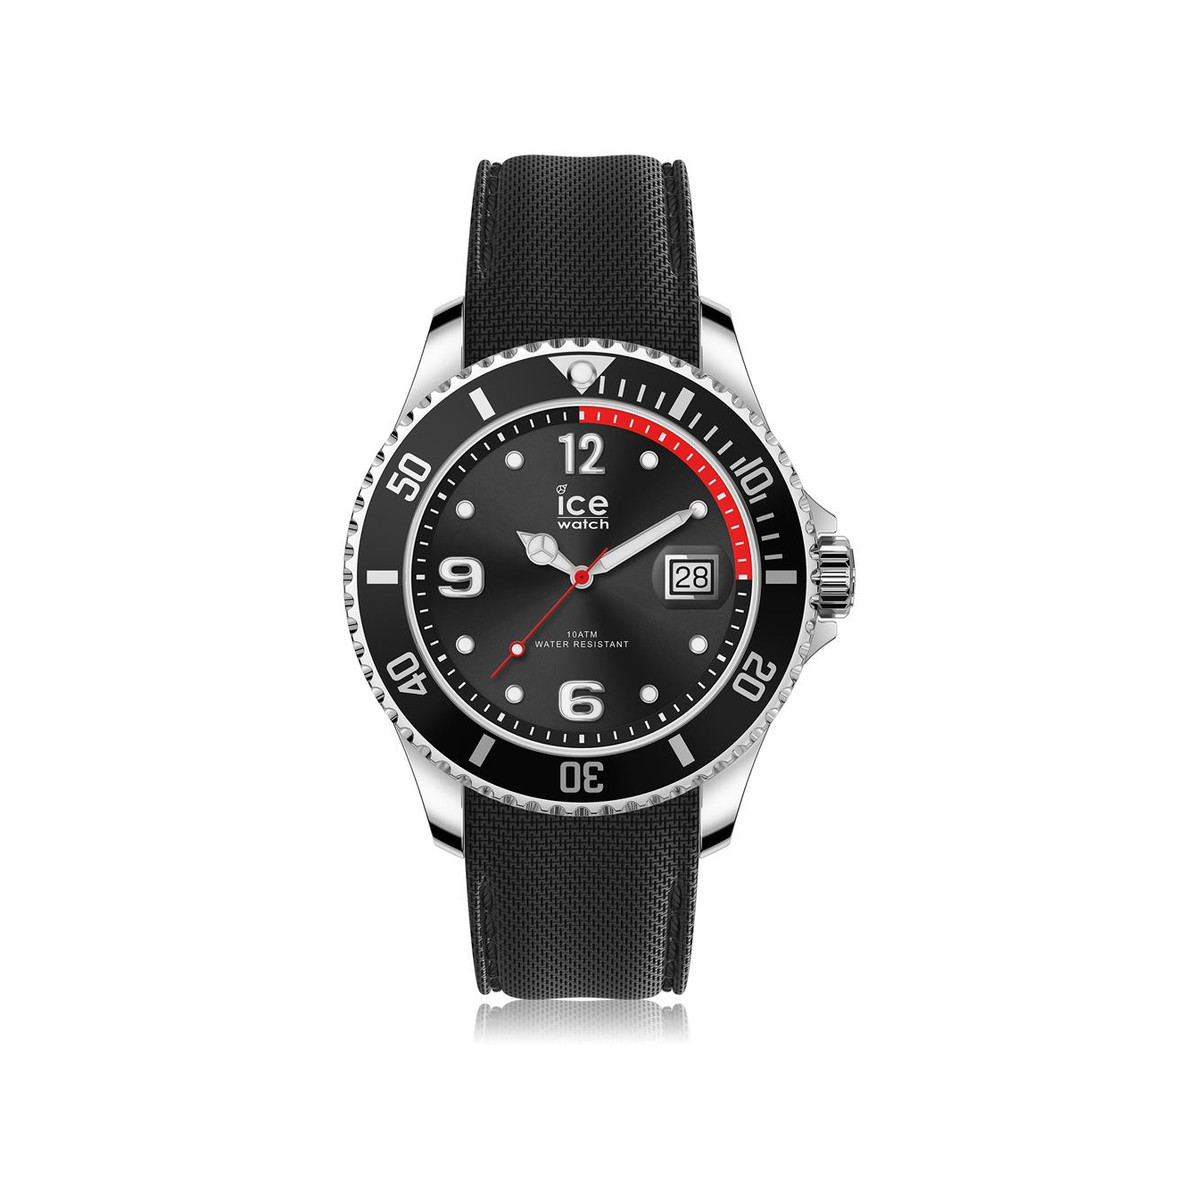 Montre Ice-Watch homme large silicone noir